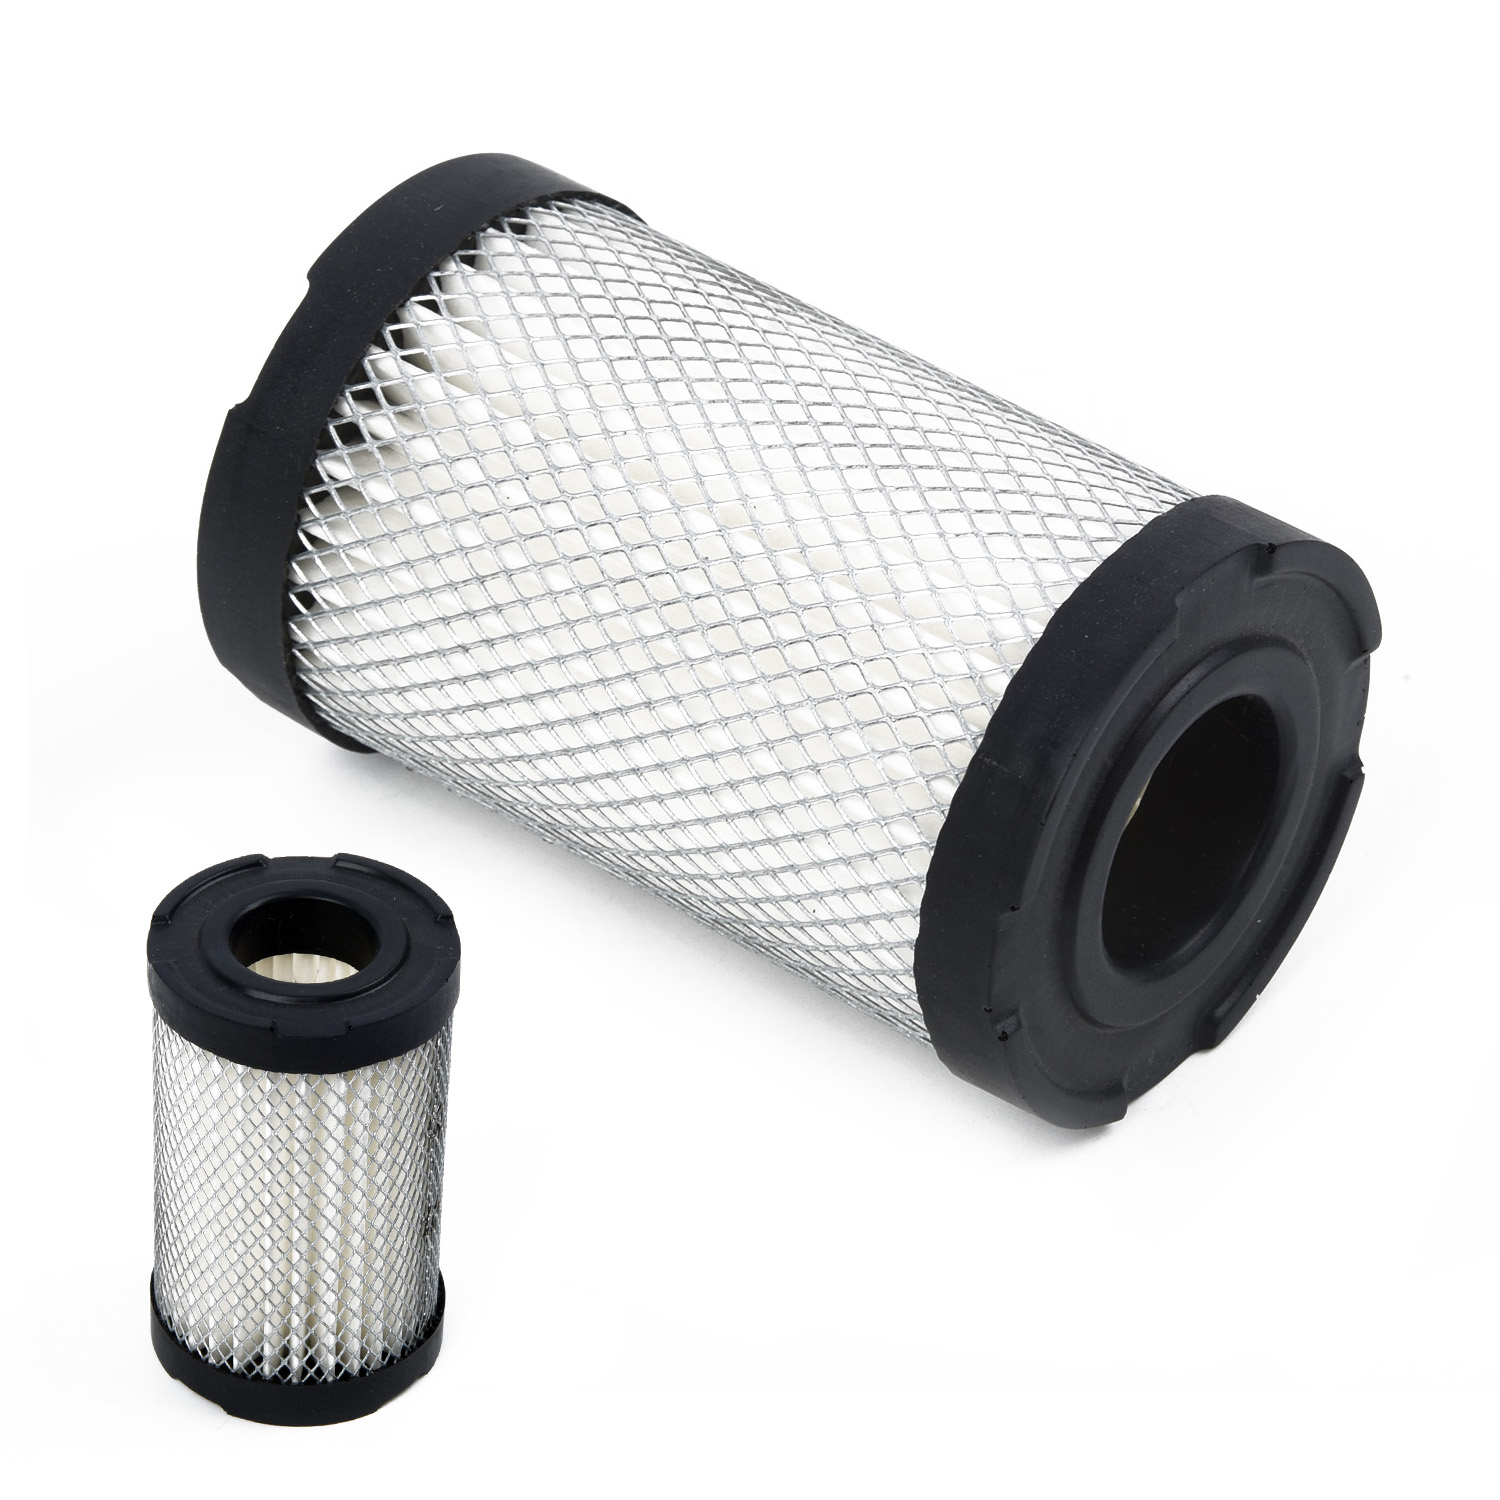 Air Filter For Tecumseh 35066&Sears 10096 63087a And Related Types Attachment